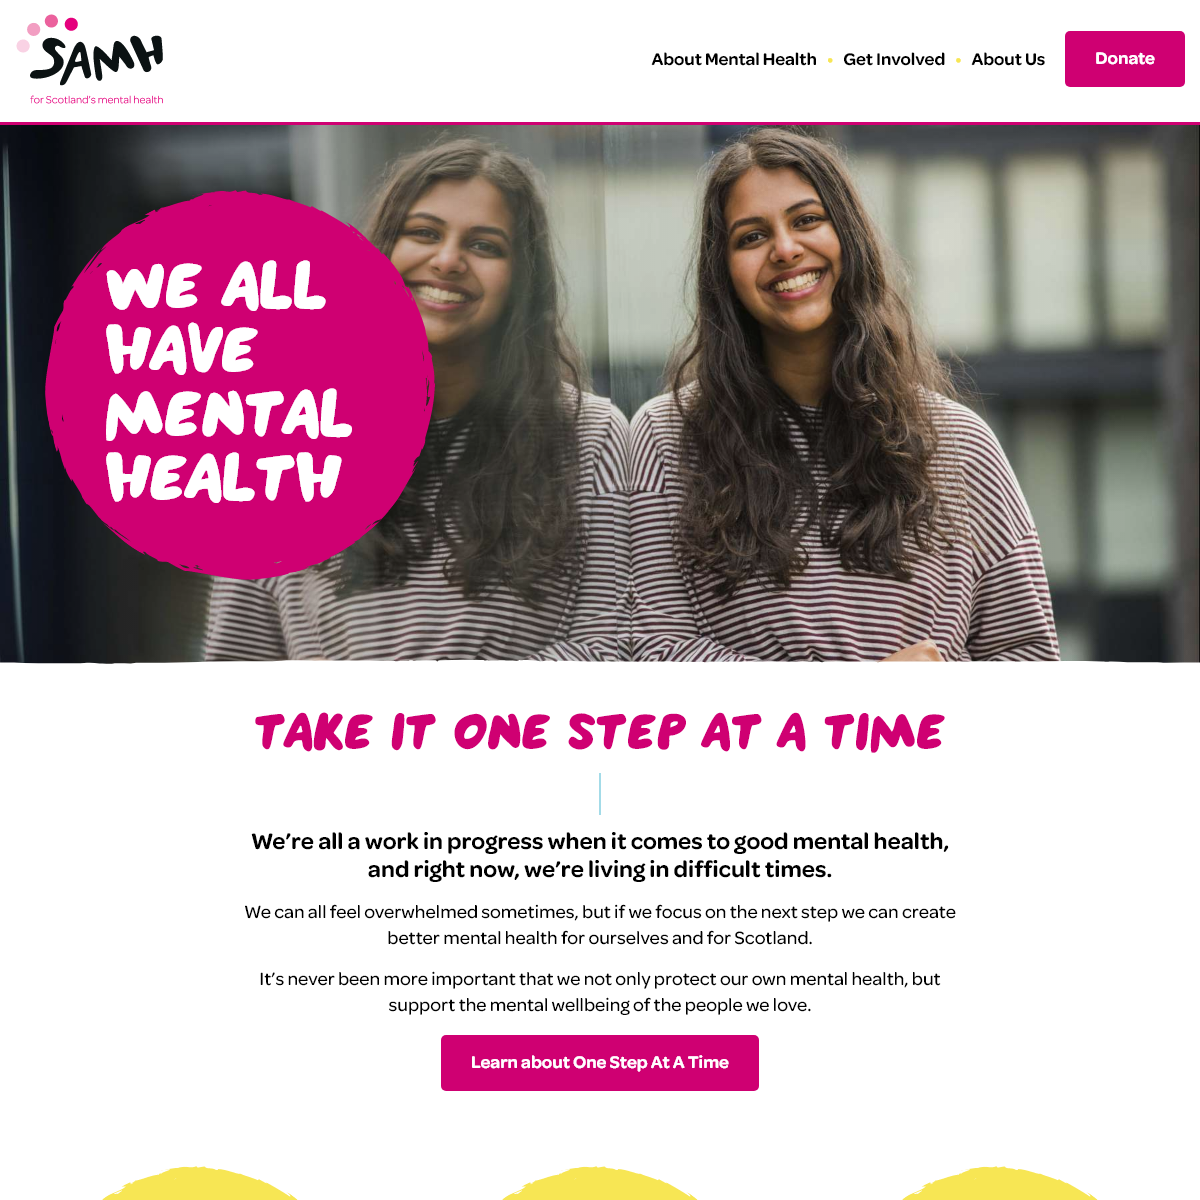 SAMH is the Scottish Association for Mental Health - SAMH